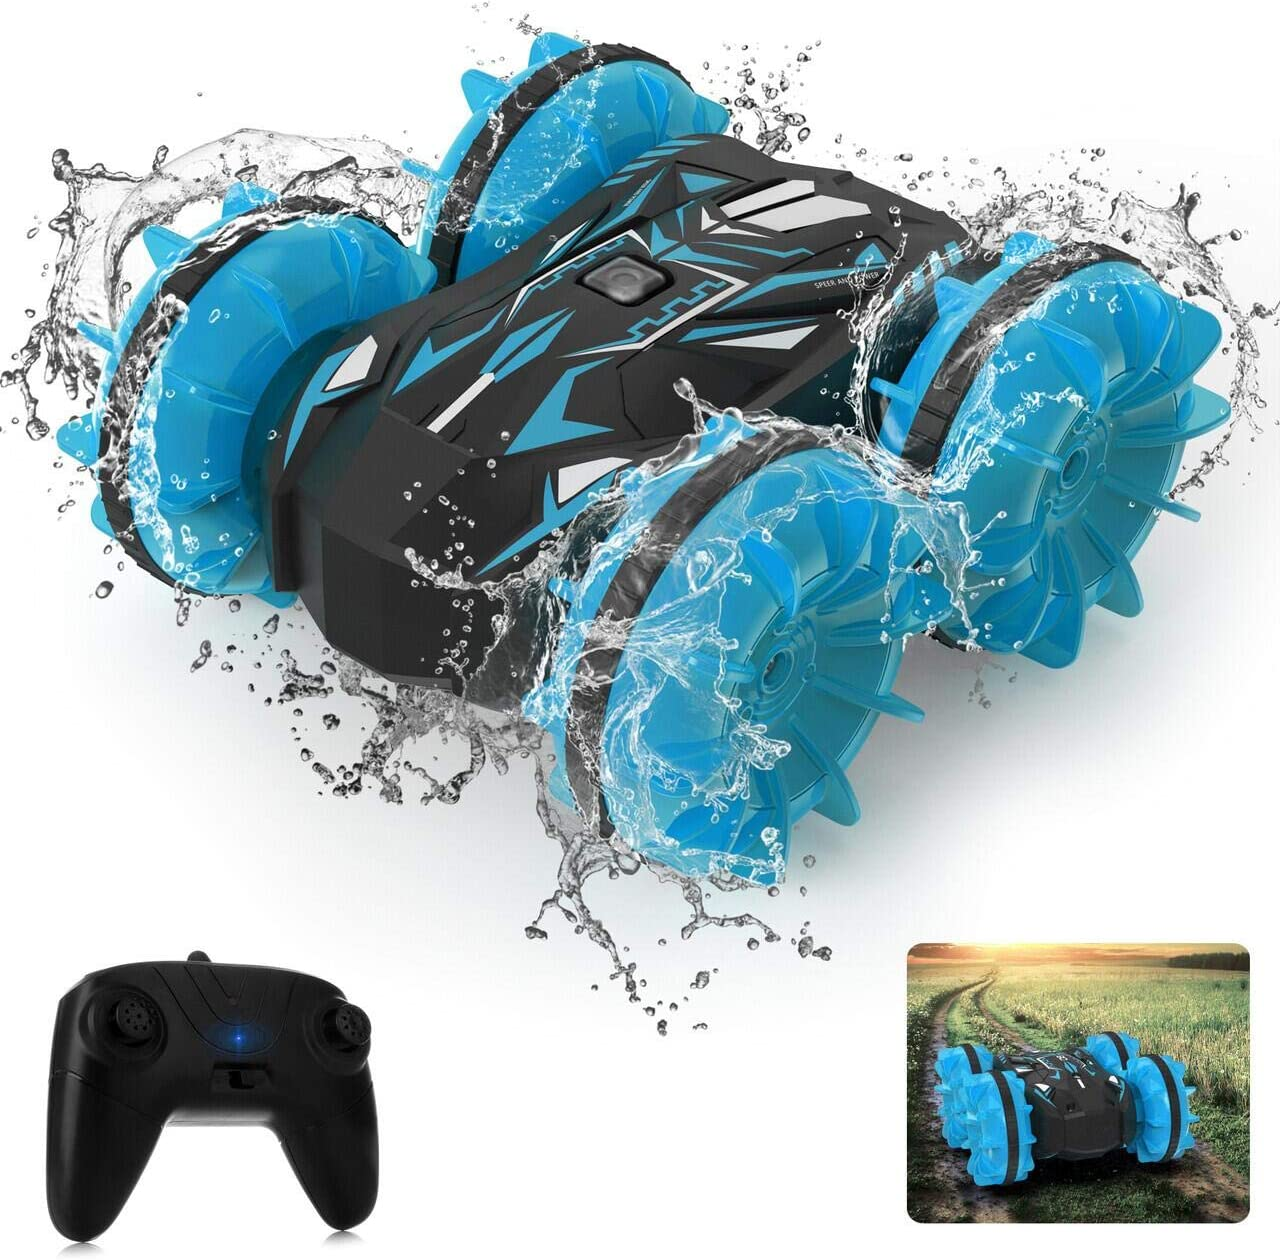 Amphibious RC Stunt Car 1:20 Scale 2.4Ghz Remote Control 4WD Double Sided Driving 360/° Spinning Blue Waterproof Remote Control Car Pool Beach Land Stunt Toy Car for Kids Age 4-12 High Speed